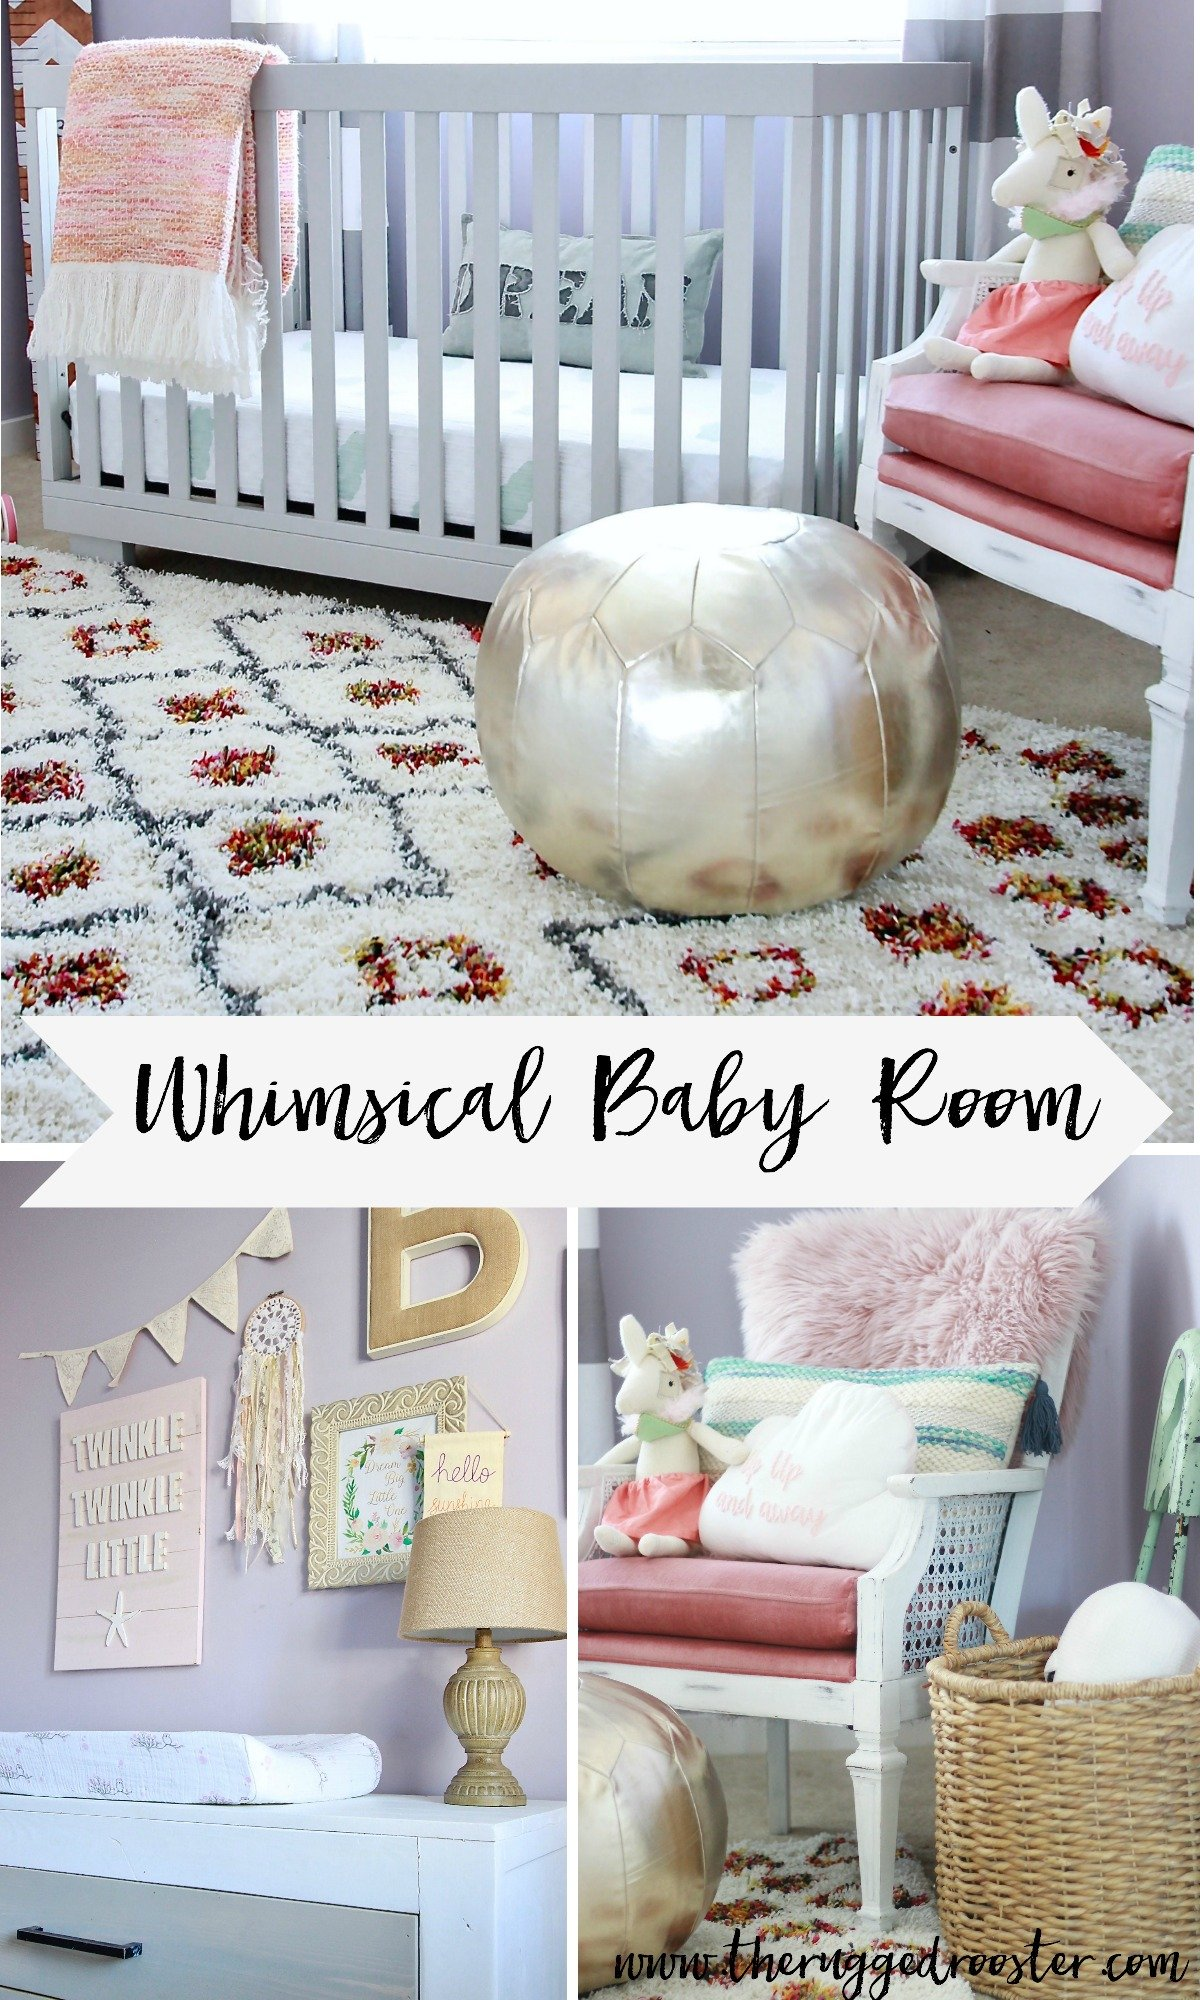 Whimsical baby room. Super adorable little girl nusery with purple pink and modern rustic pieces www.whitepicketfarmhouse.com